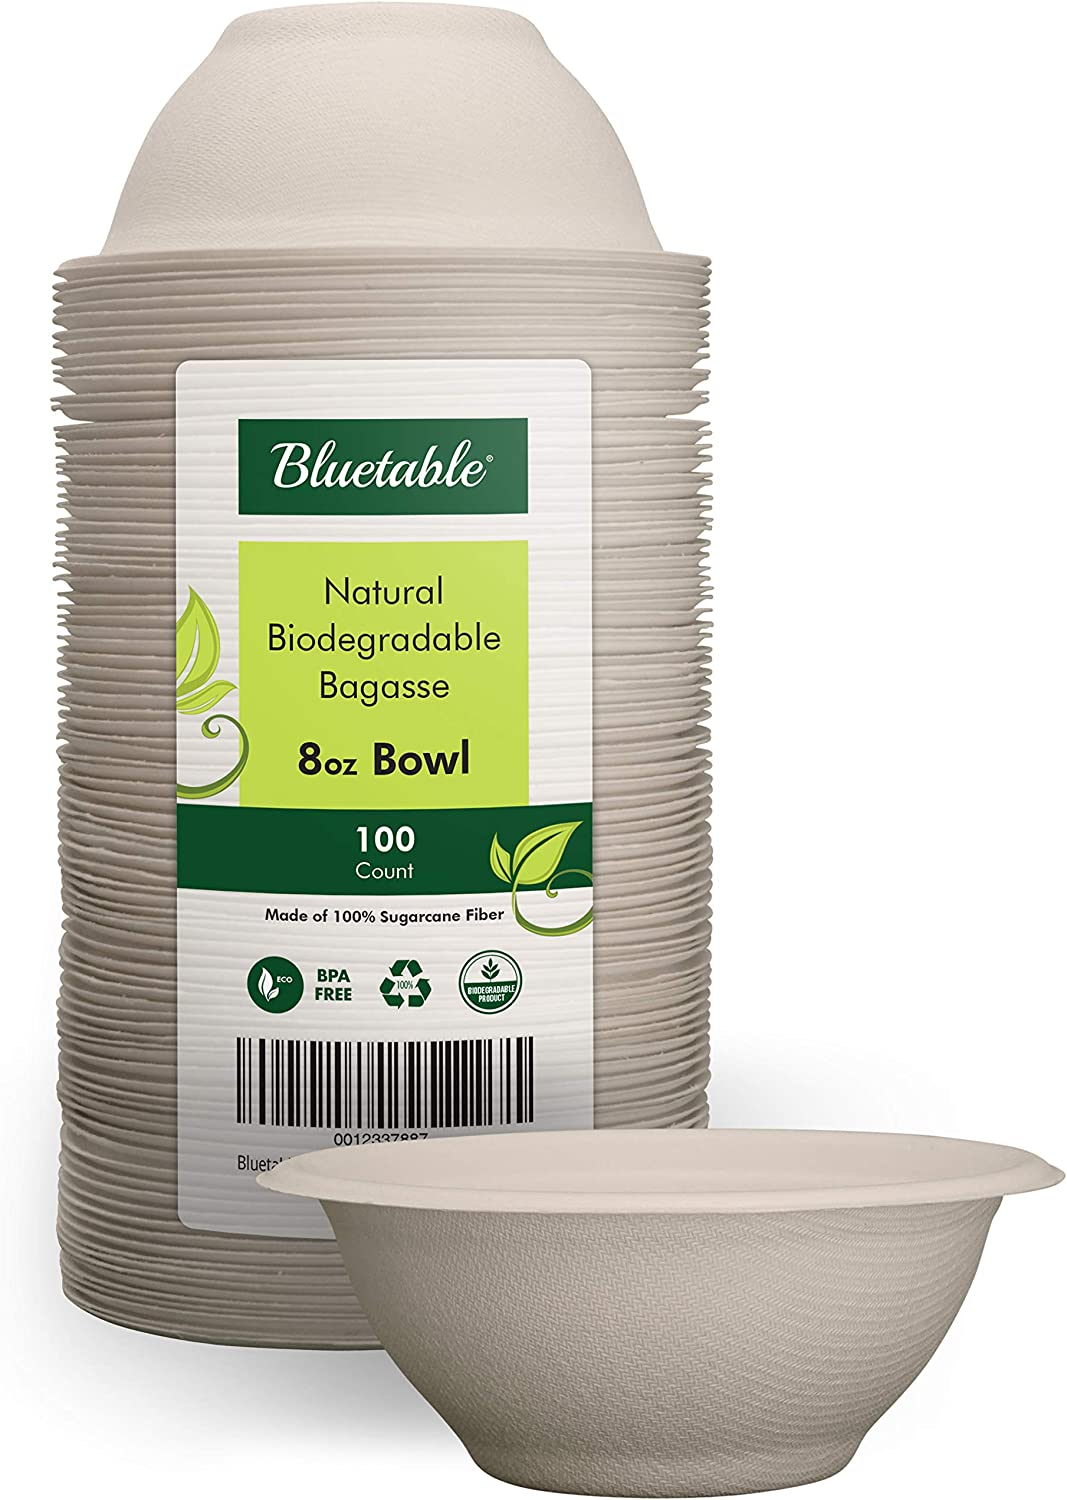 Made from 100/% Sugarcane Disposable Eco Friendly bagasse bowls by Bluetable Biodegradable Bowls Natural Disposable Paper Bowls Compostable Bowls 12 Oz 100 Pack